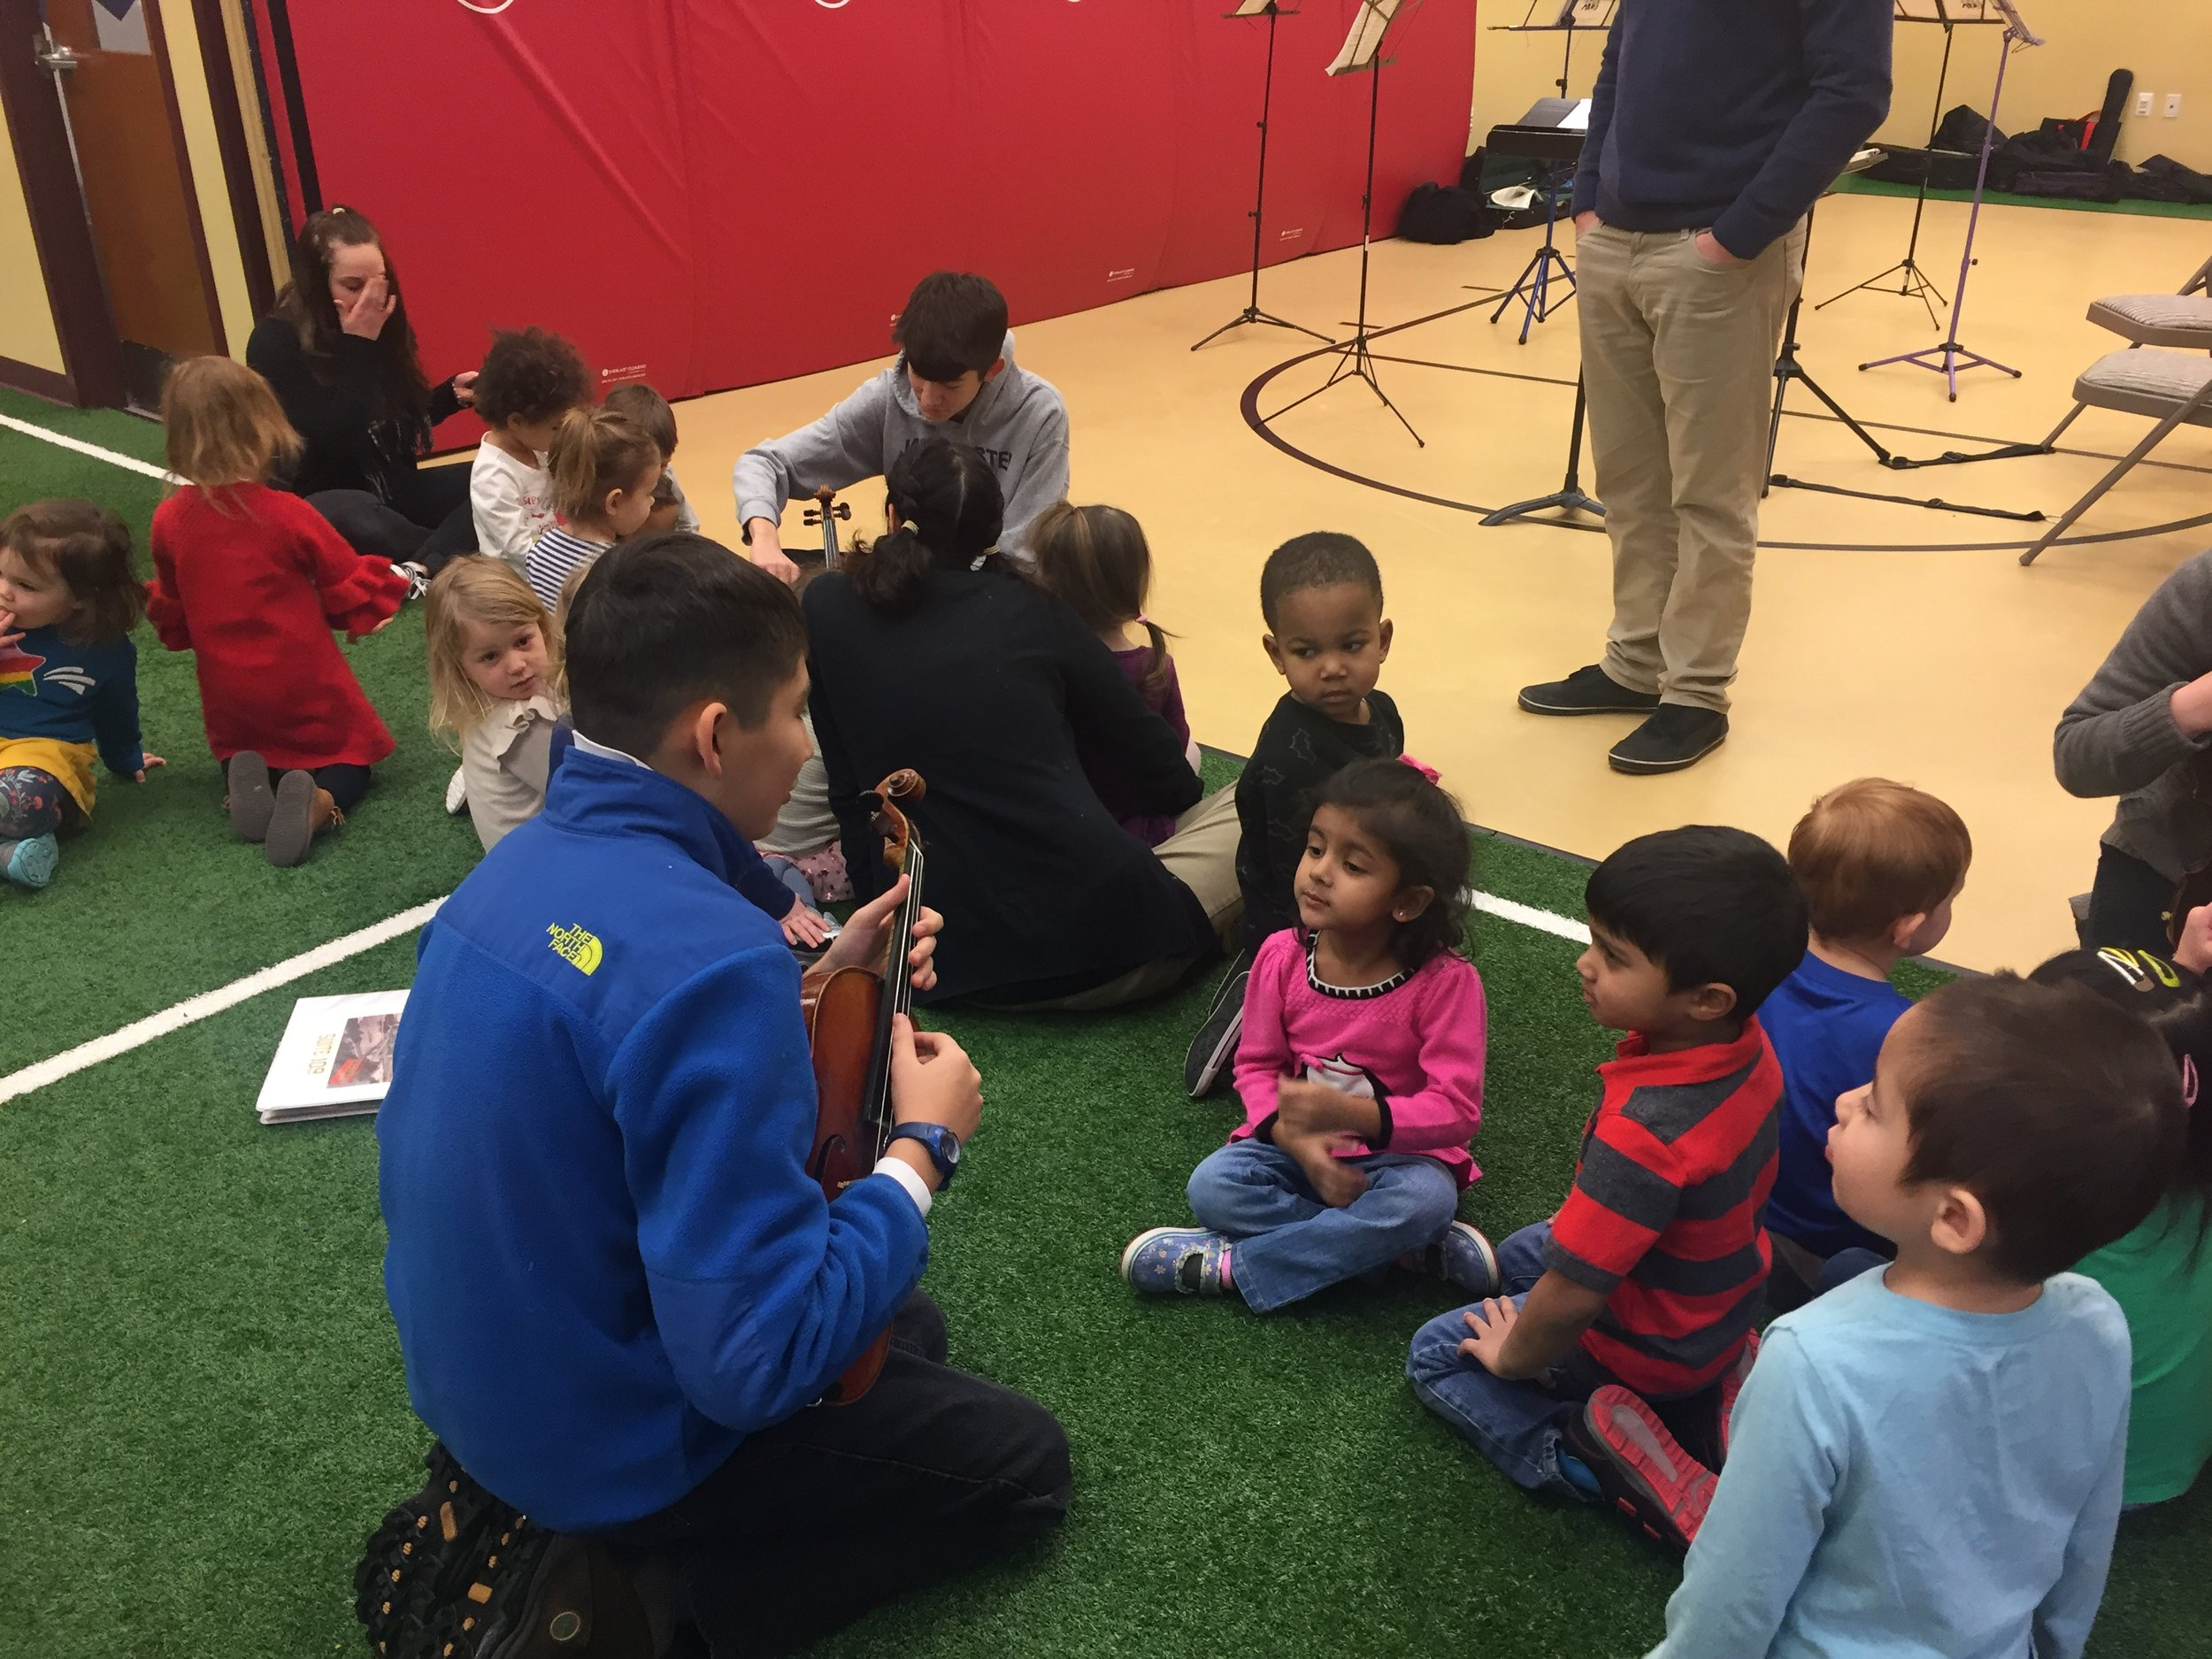 Martin Luther King Jr. Day - Monday, January 16, 2018Two dozen YC² members gave up their school vacation day to gather early for rehearsal with Conductor Edward Leonard, then walk to a nearby pre-school to perform music inspired by Martin Luther King Jr.